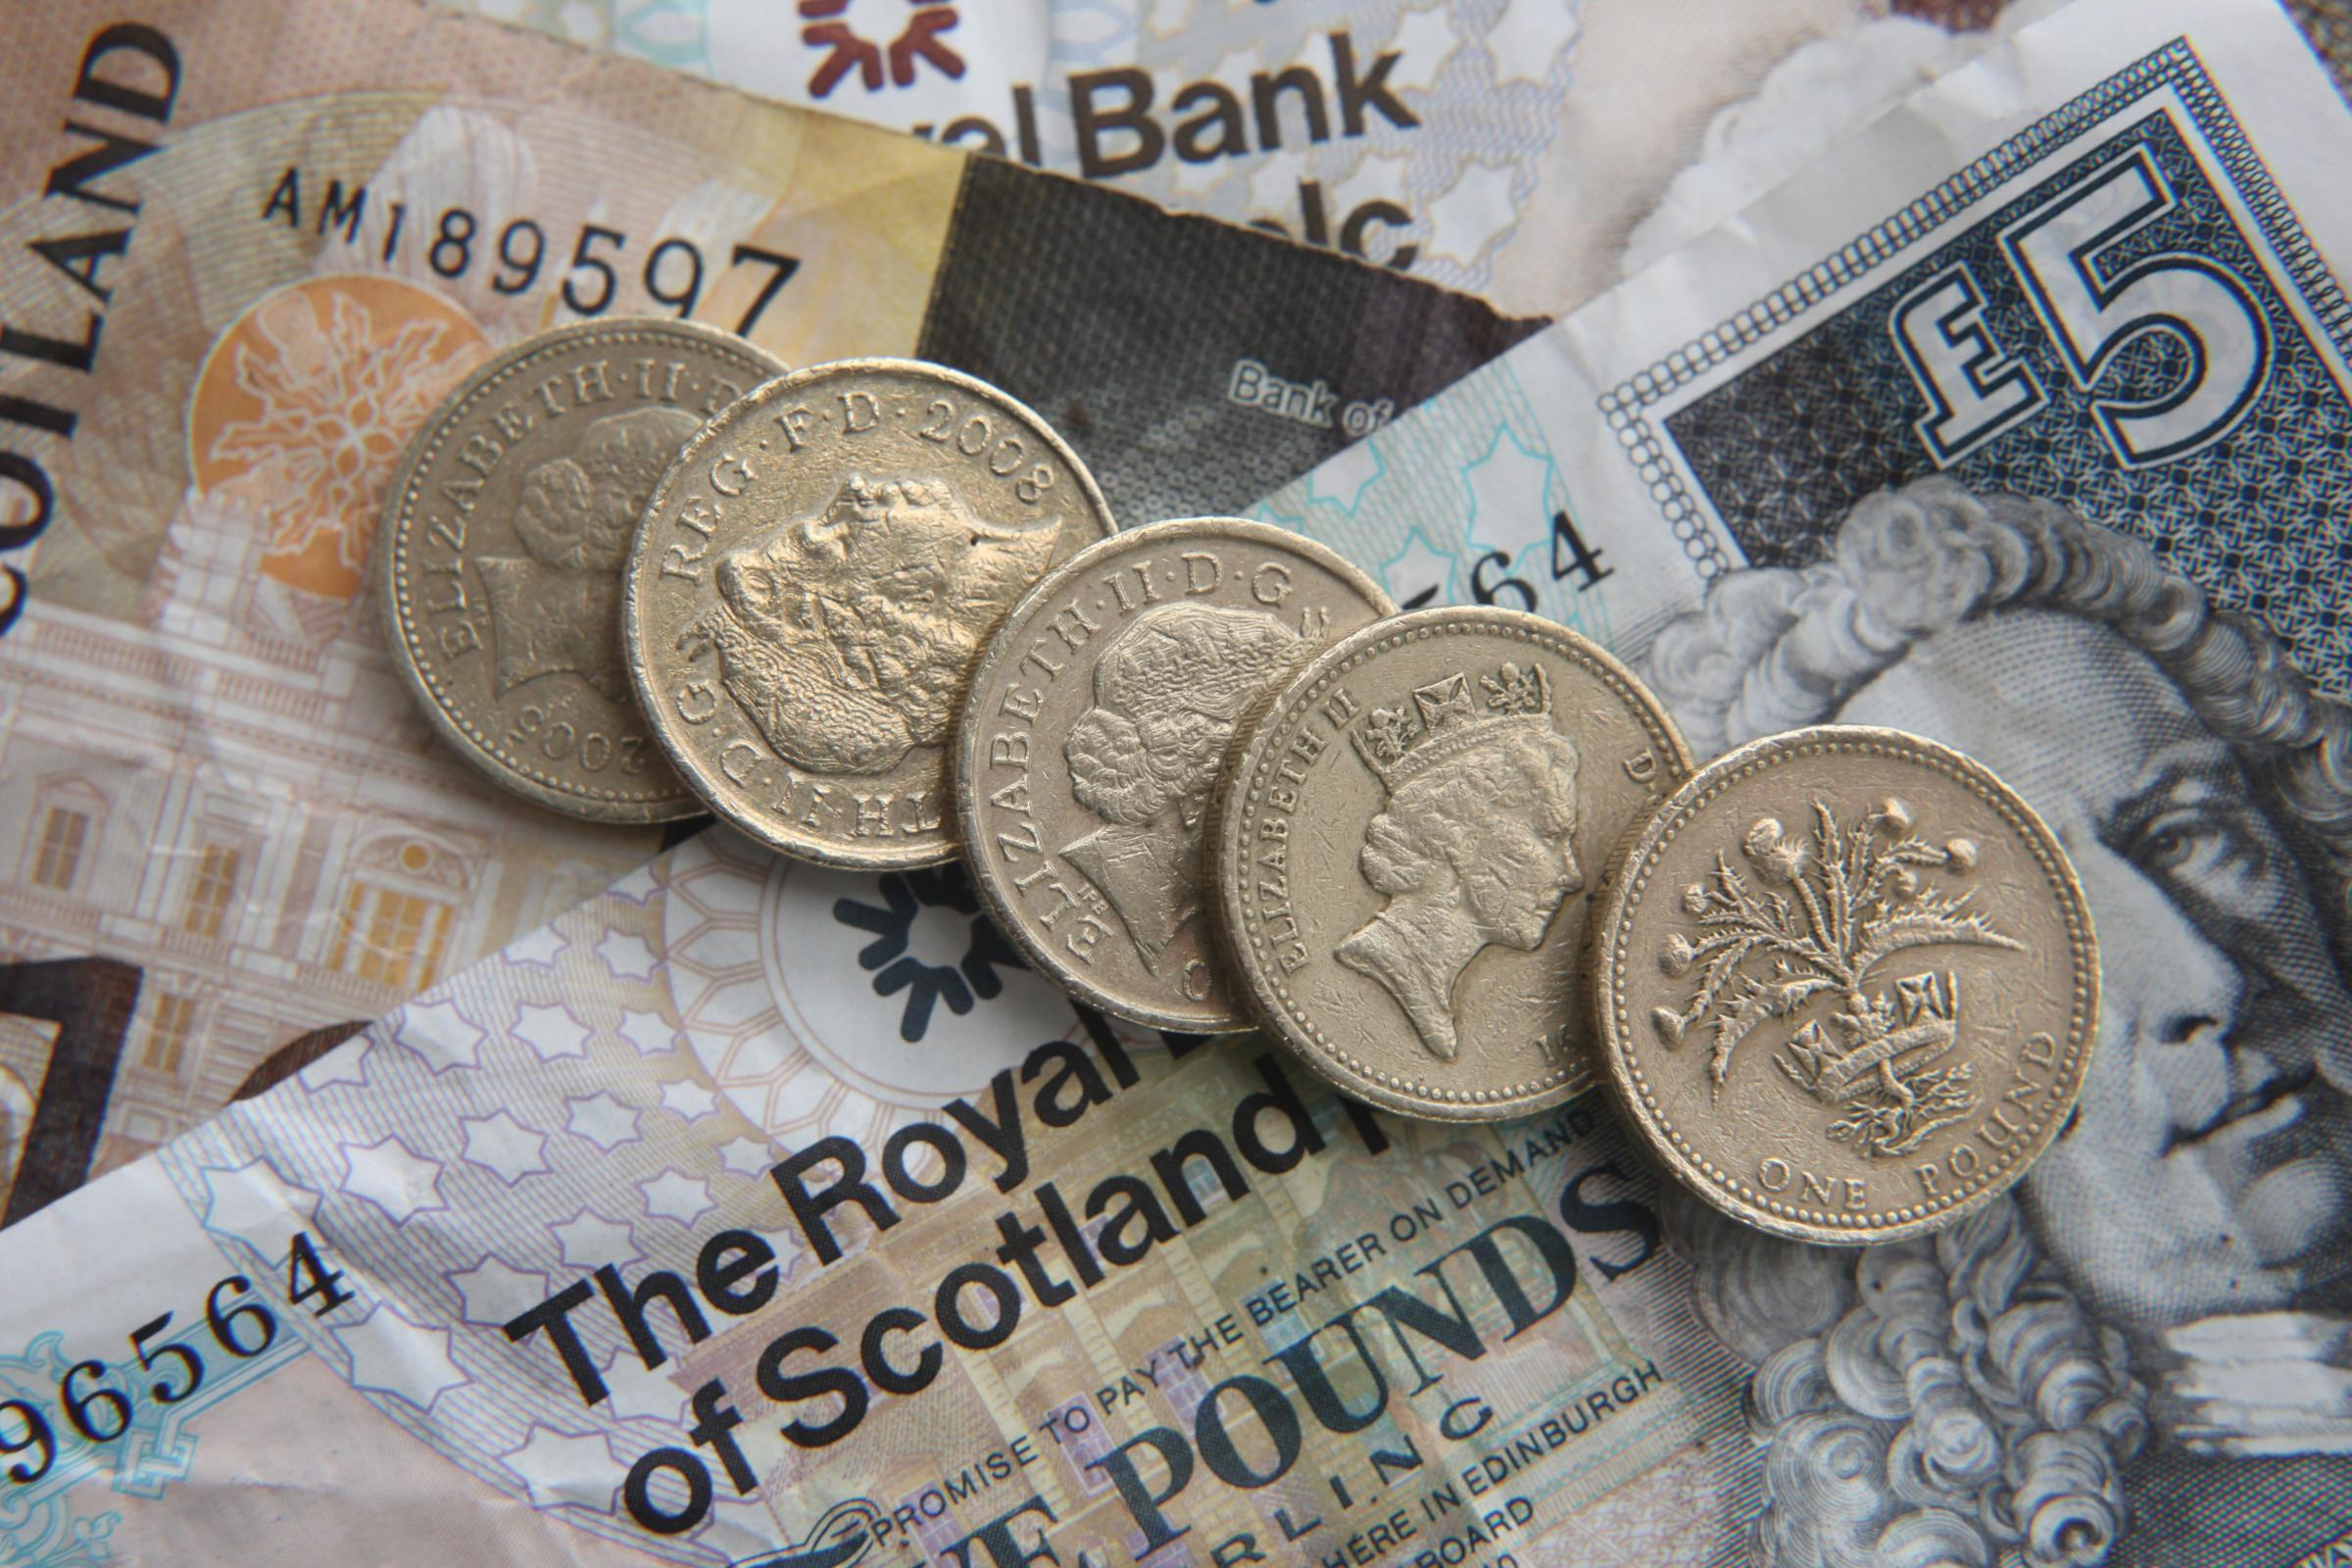 Scotland need not accept a share of the UK's debt